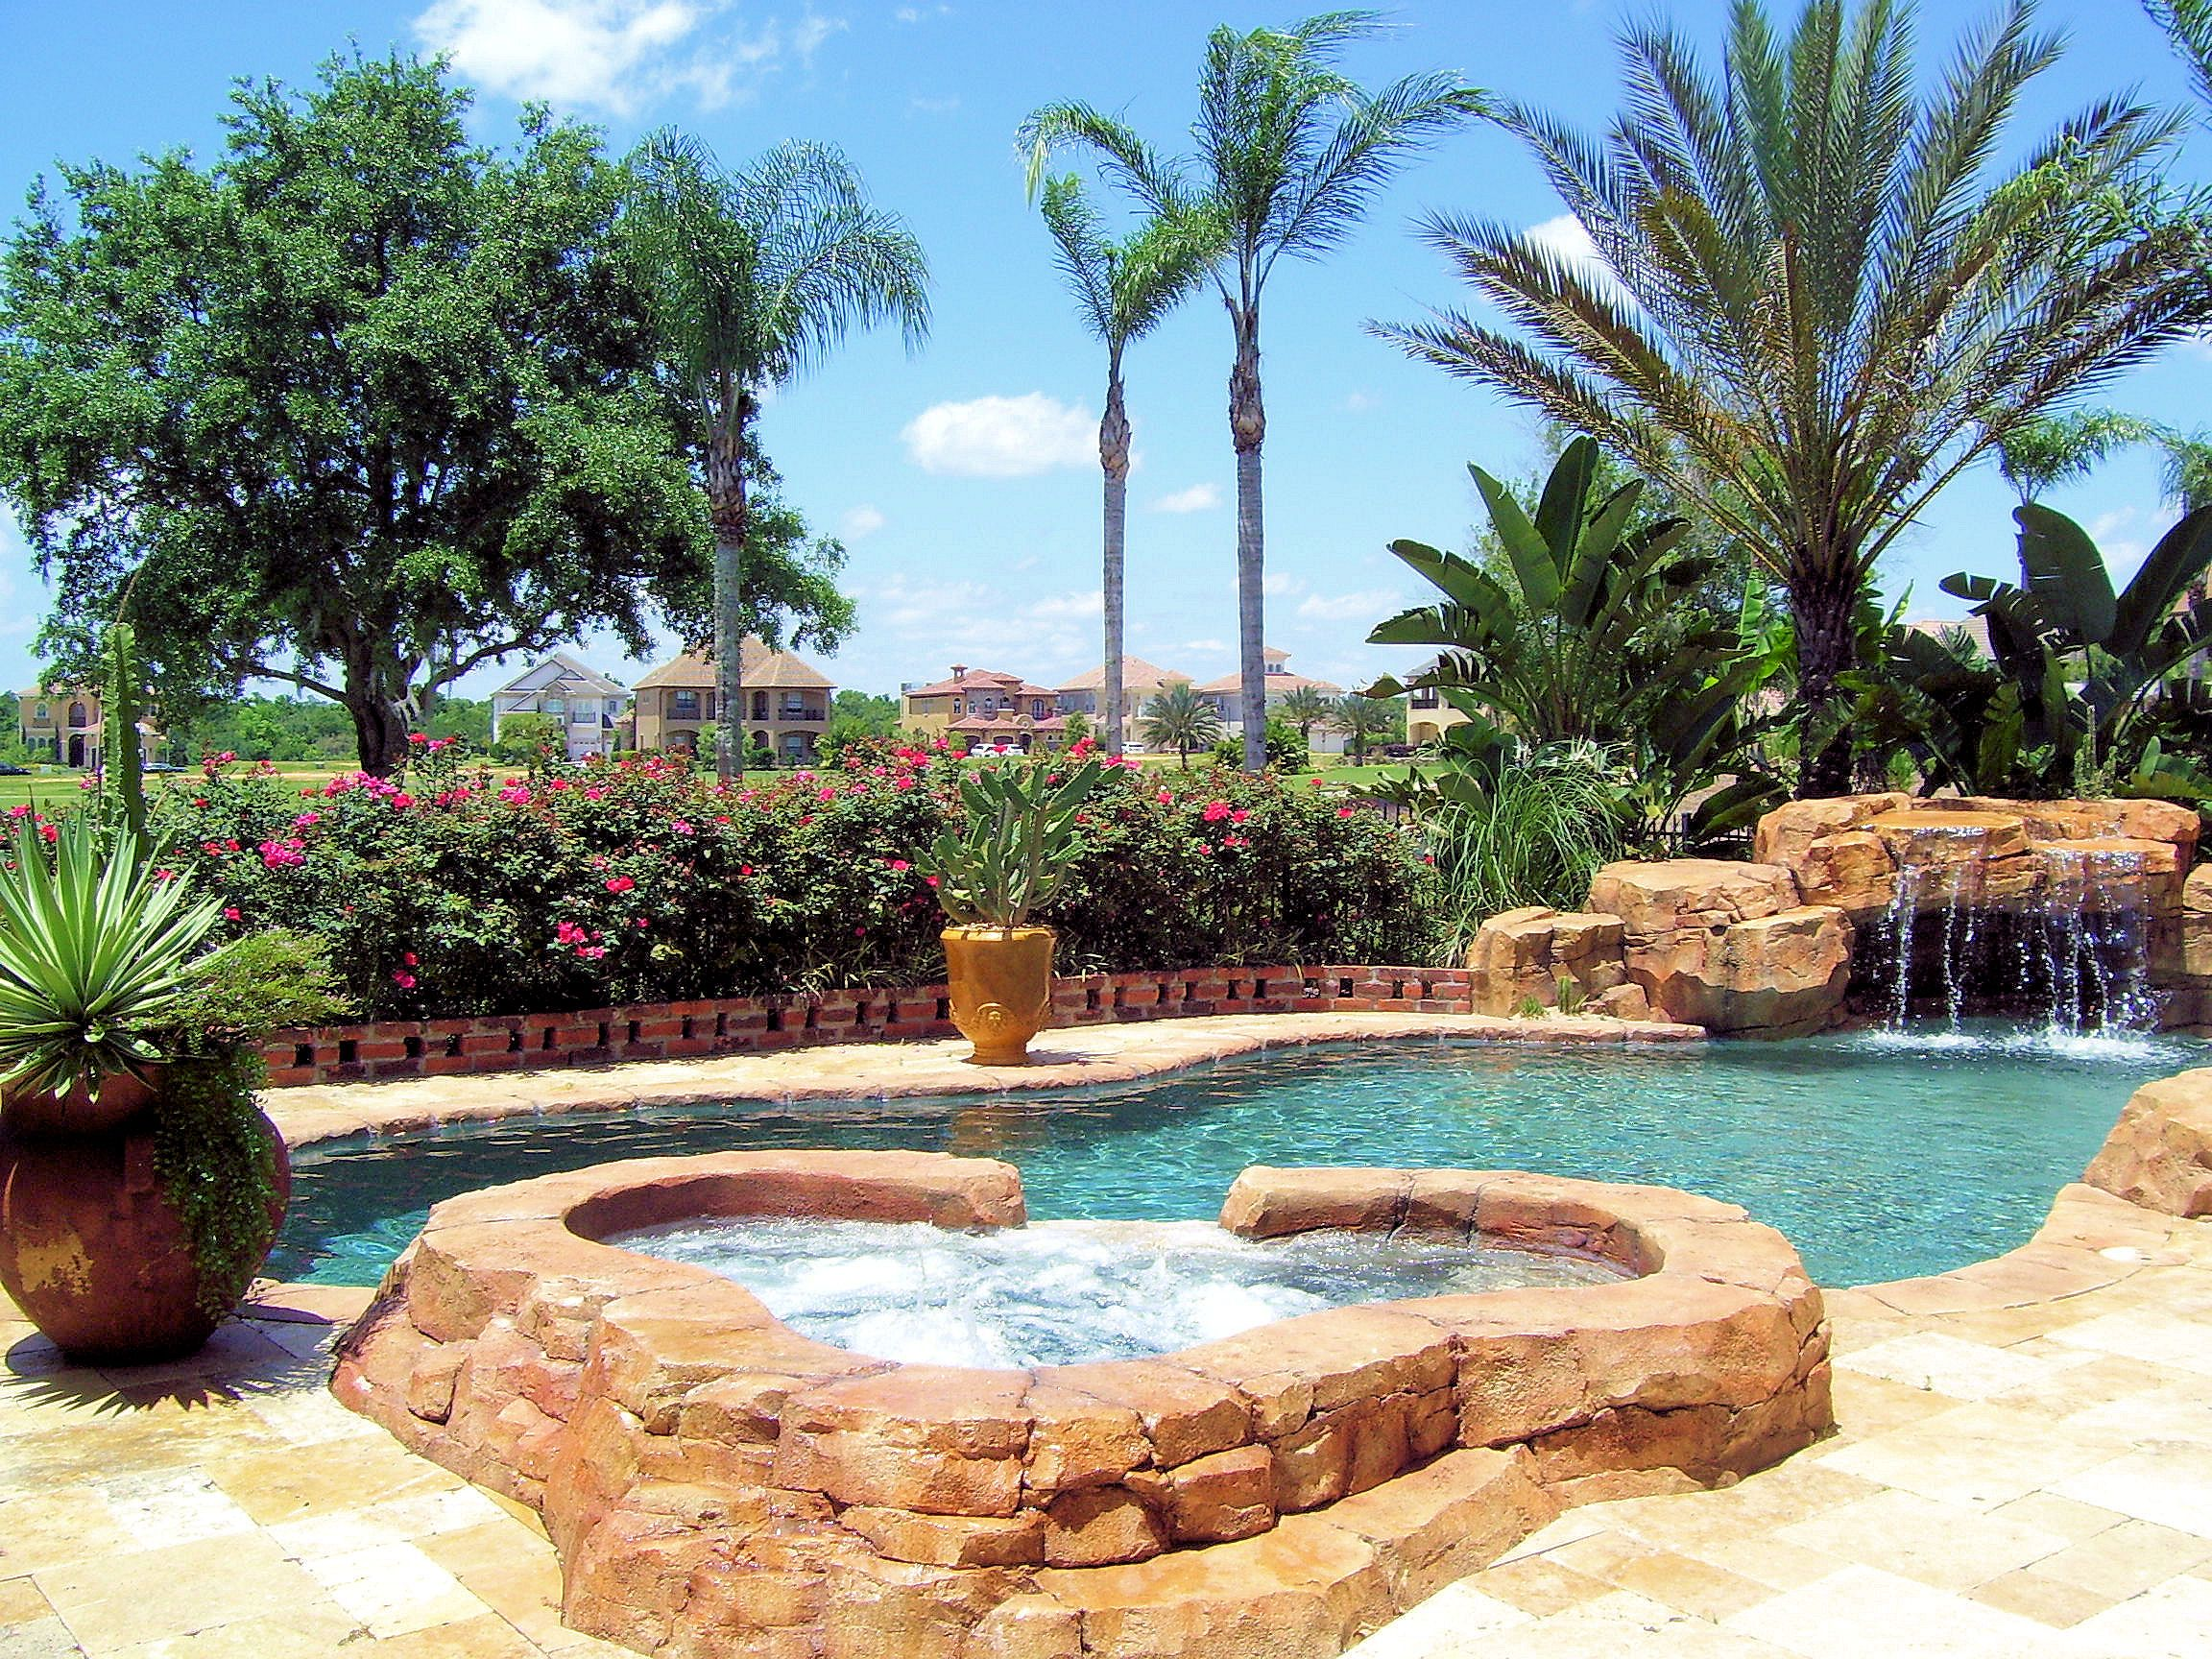 Spanish Villa At Rent A Home In Reunion Pool View Of Spa And Water Fall Overlooking Golf Course Vacation Rental Vacation Dream House Exterior